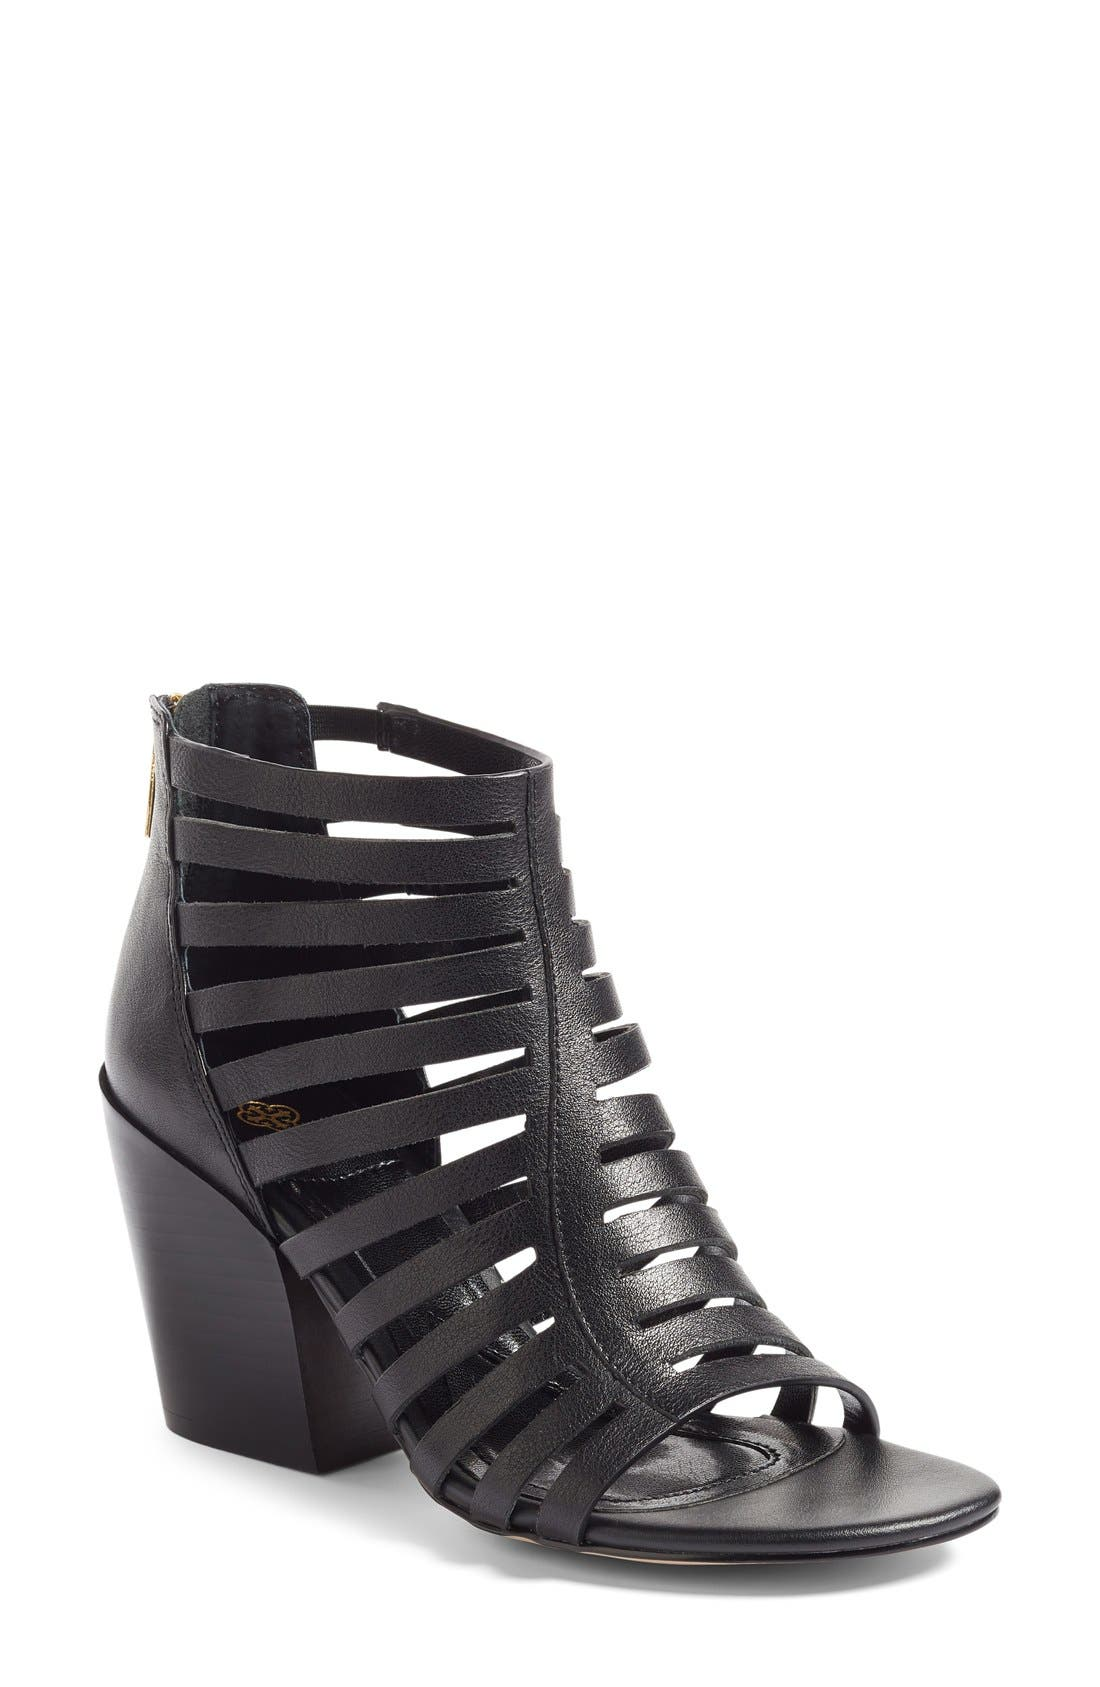 Alternate Image 1 Selected - Isolá Ianna Cage Sandal (Women)